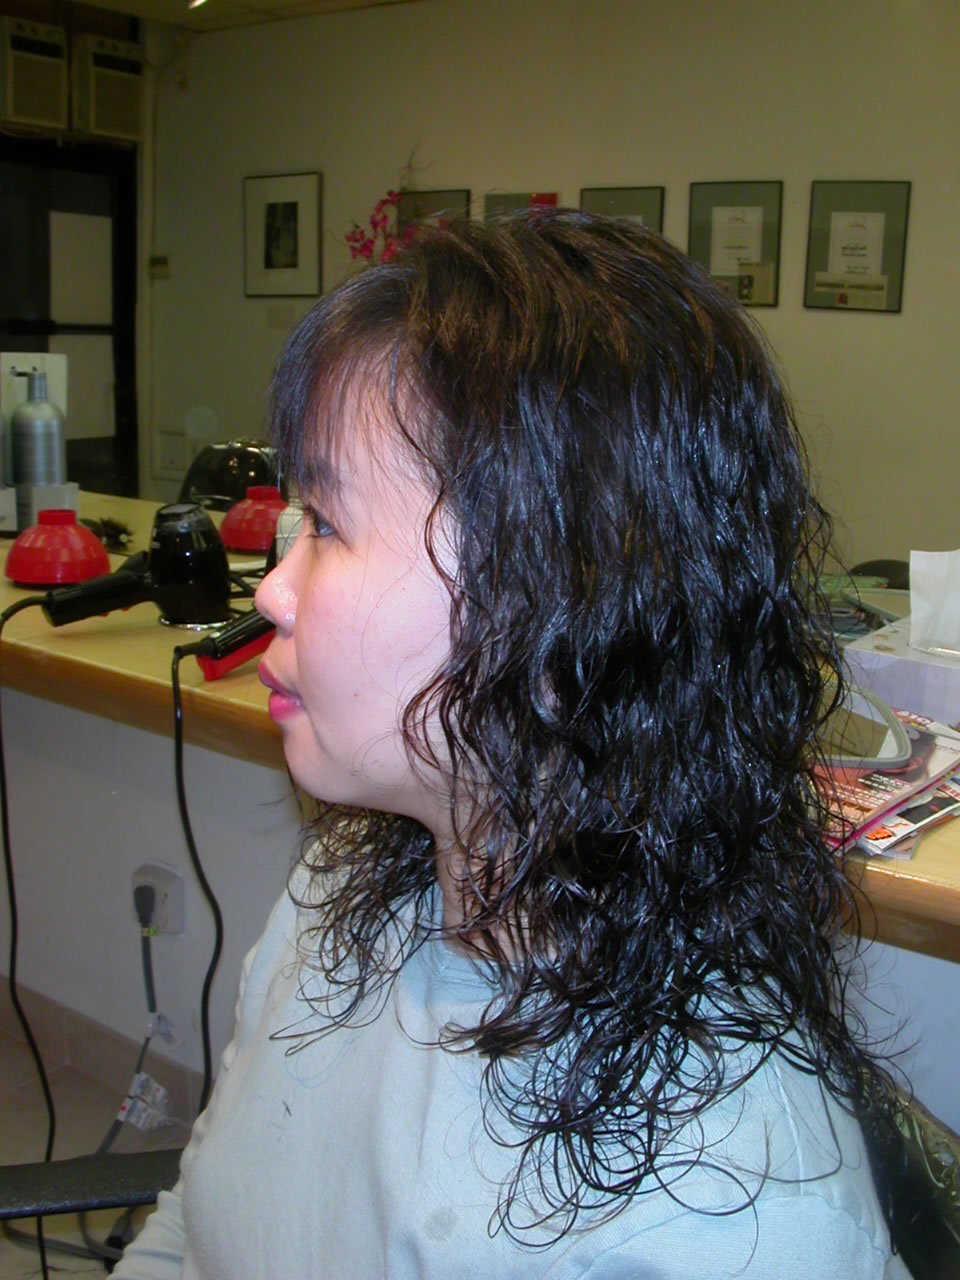 Hair Salon Perm : Perm Hair Before After